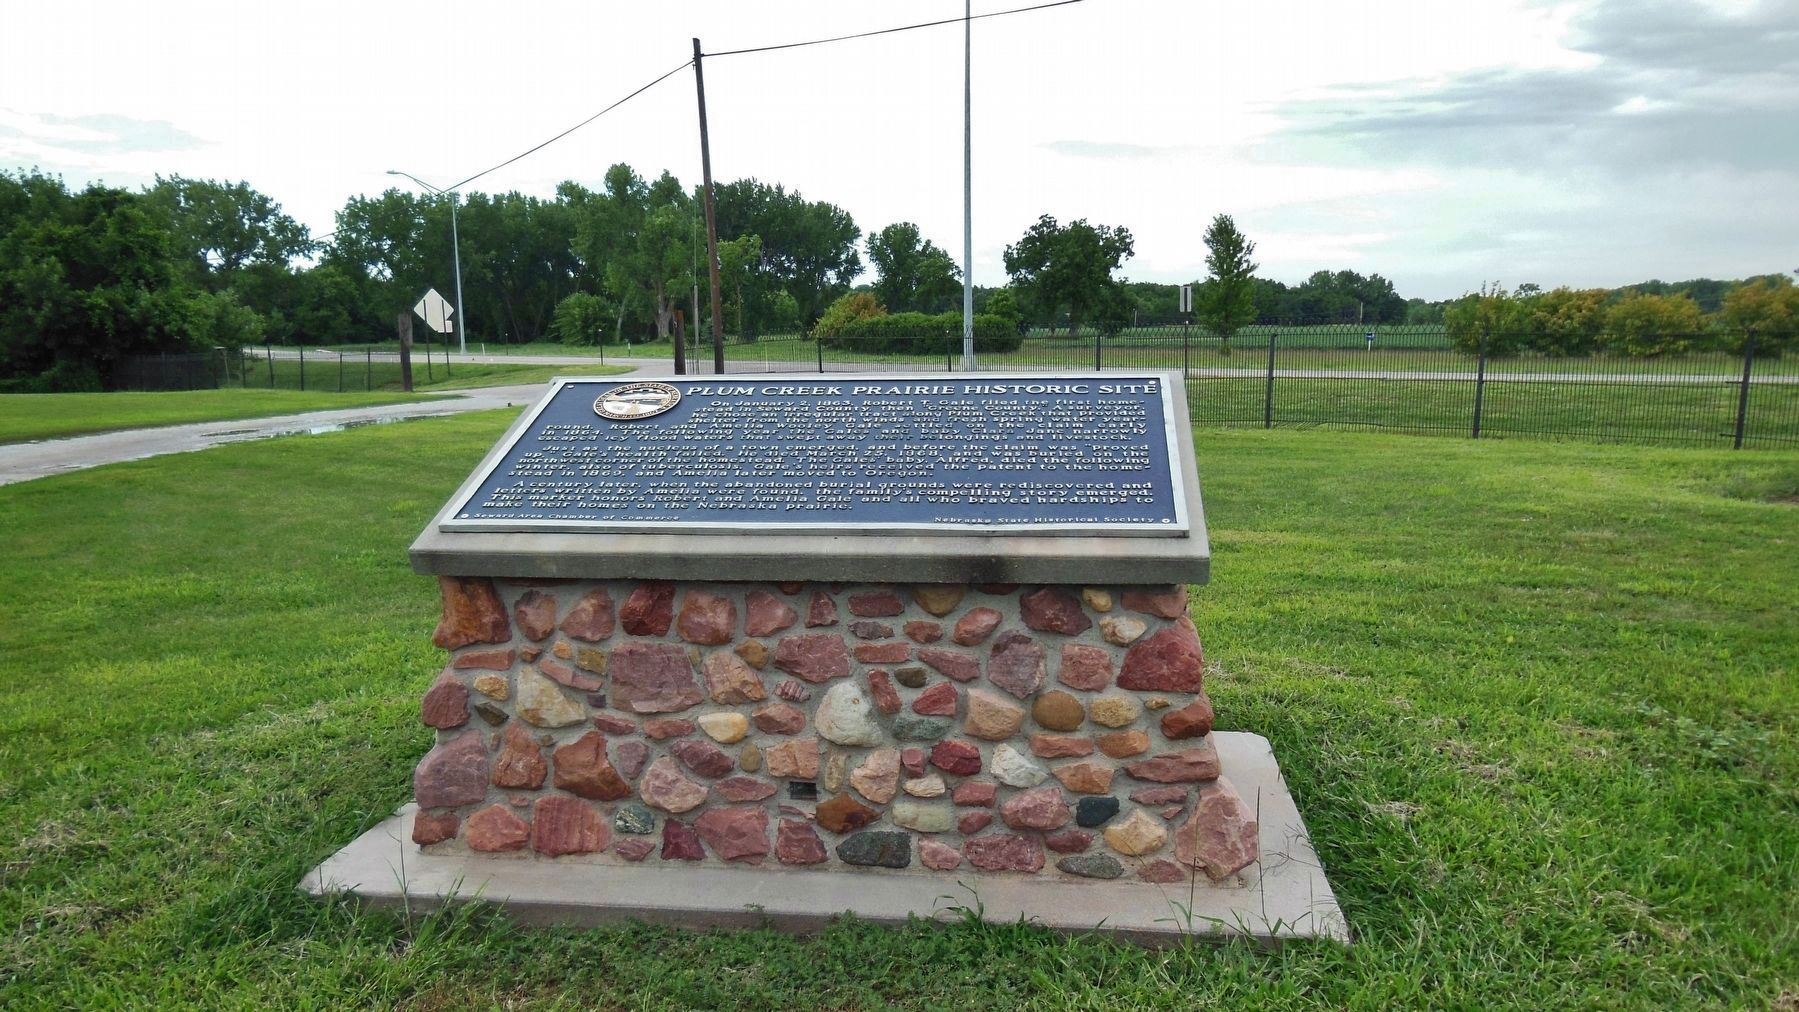 Plum Creek Prairie Historic Site Marker (<b><i>wide view</b></i>) image. Click for full size.